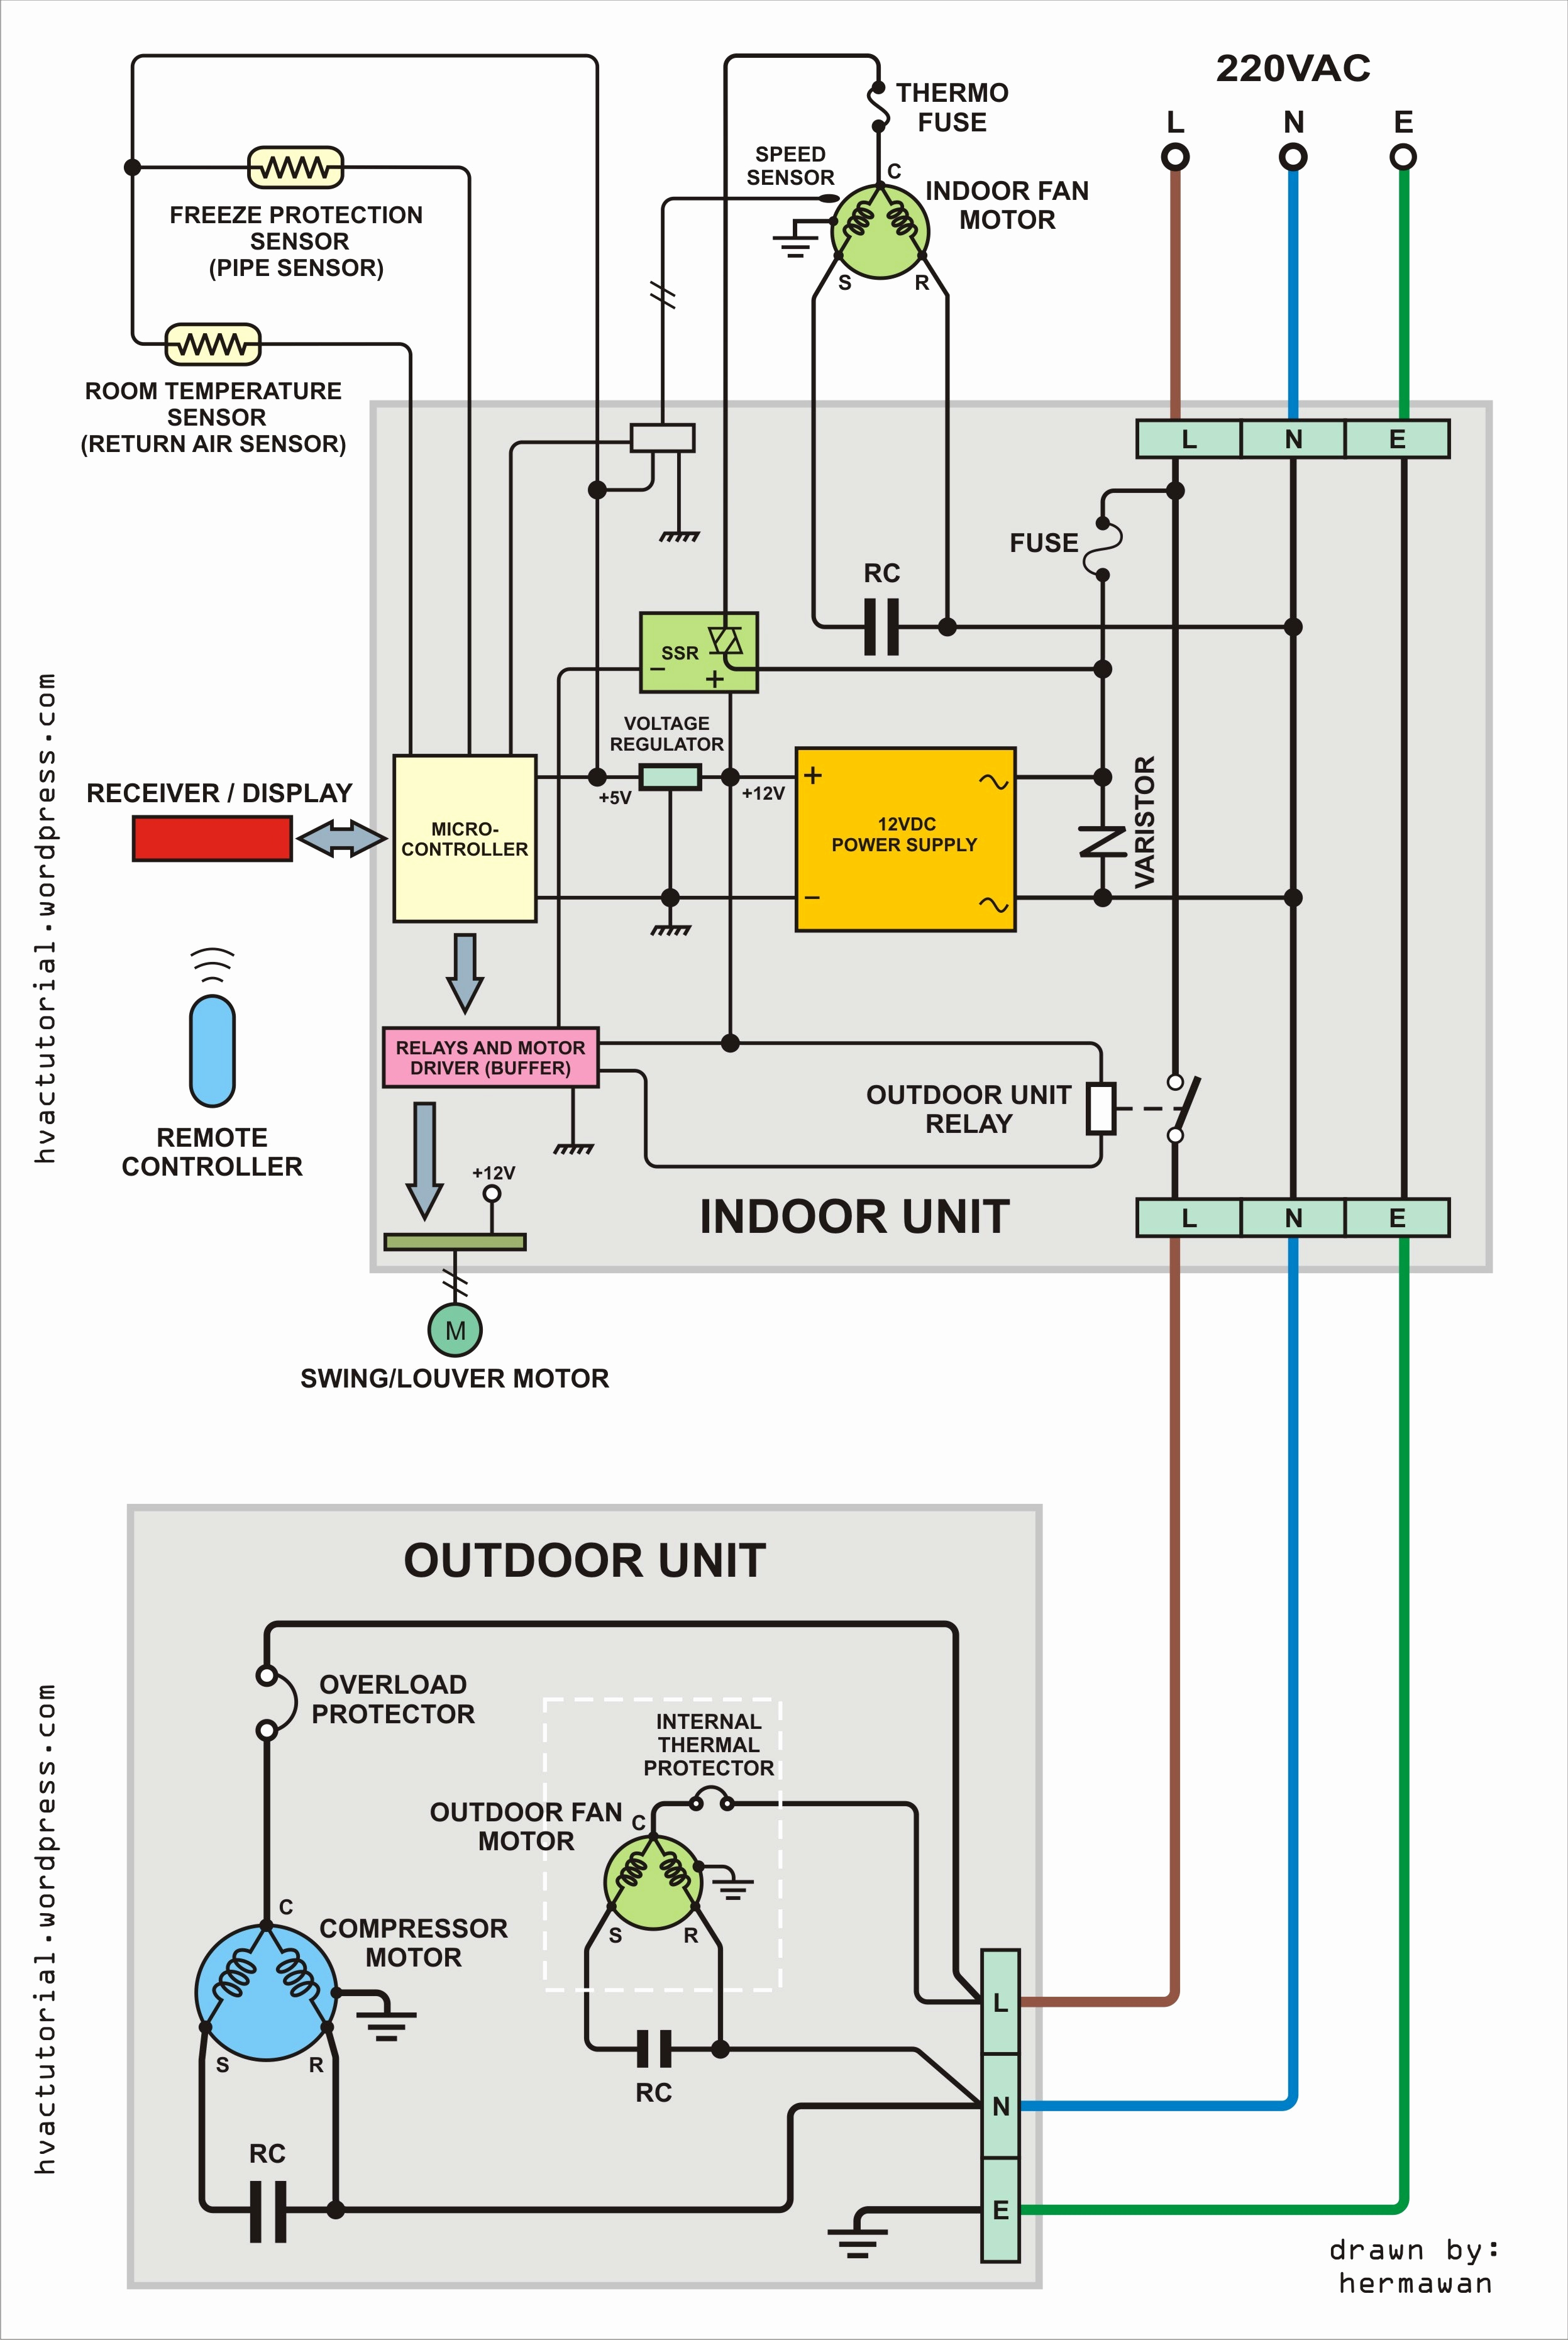 Ac Contactor Wiring Diagram | Hvac Contactor Wiring |  | Wiring Diagram